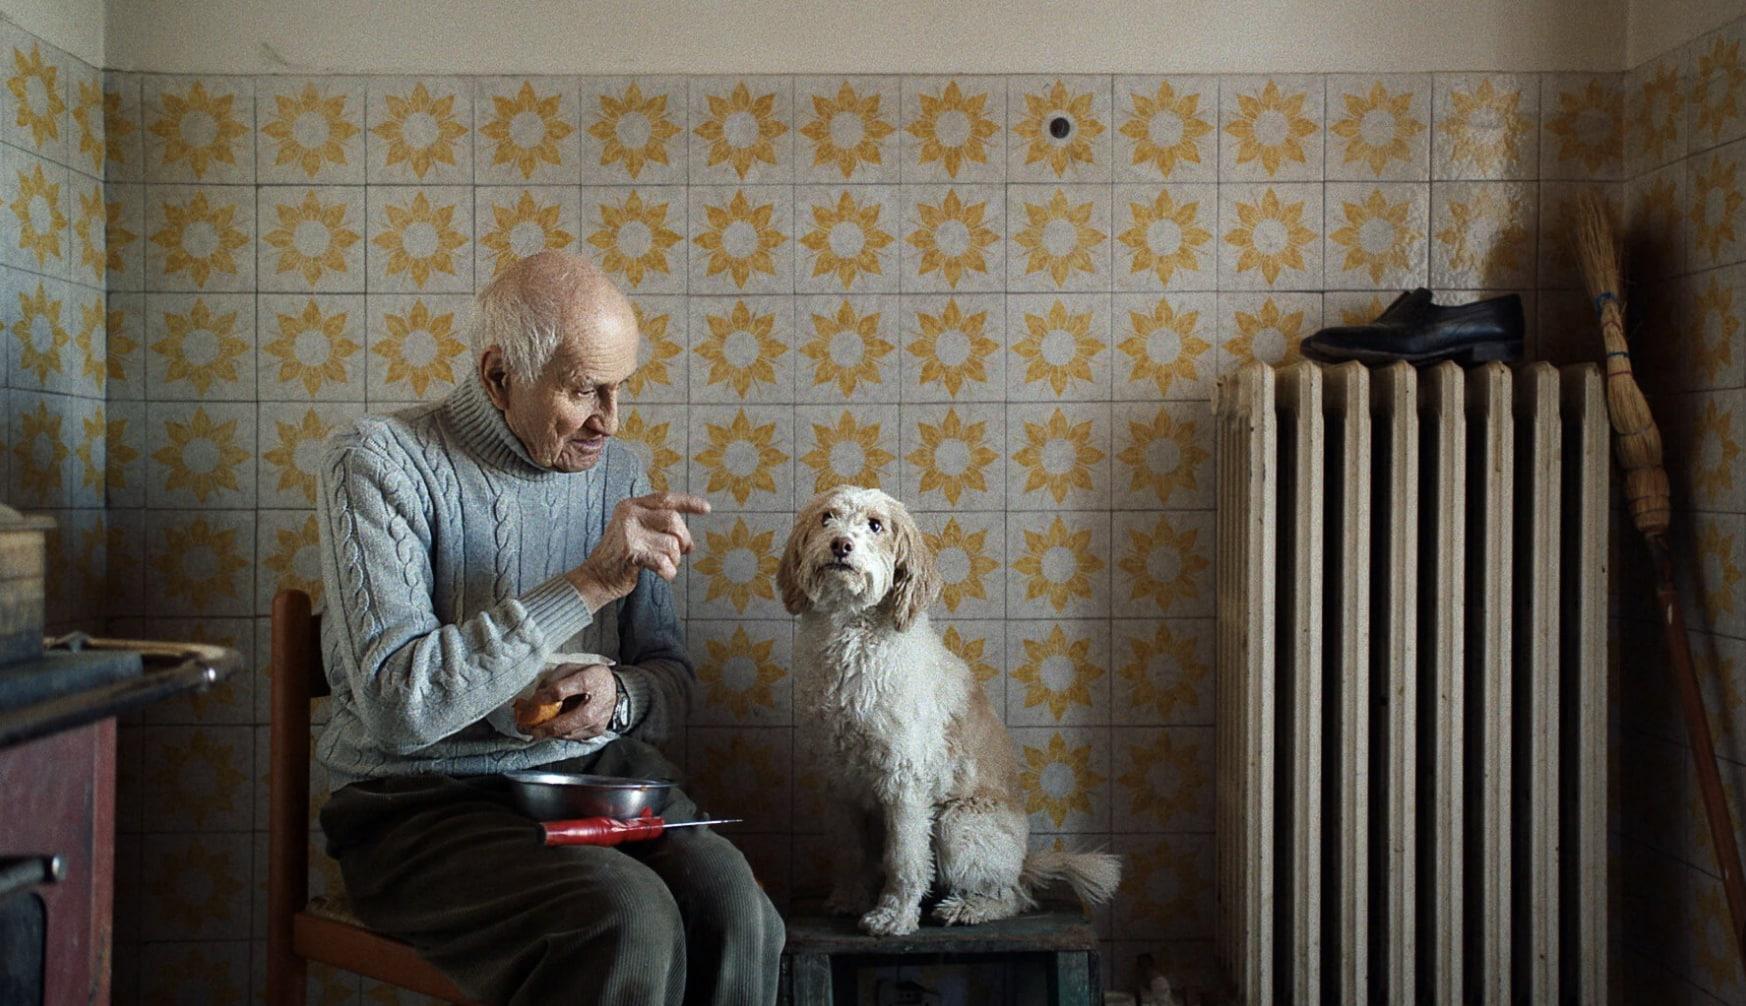 An older man and a dog sitting together in a kitchen, from The Truffle Hunters